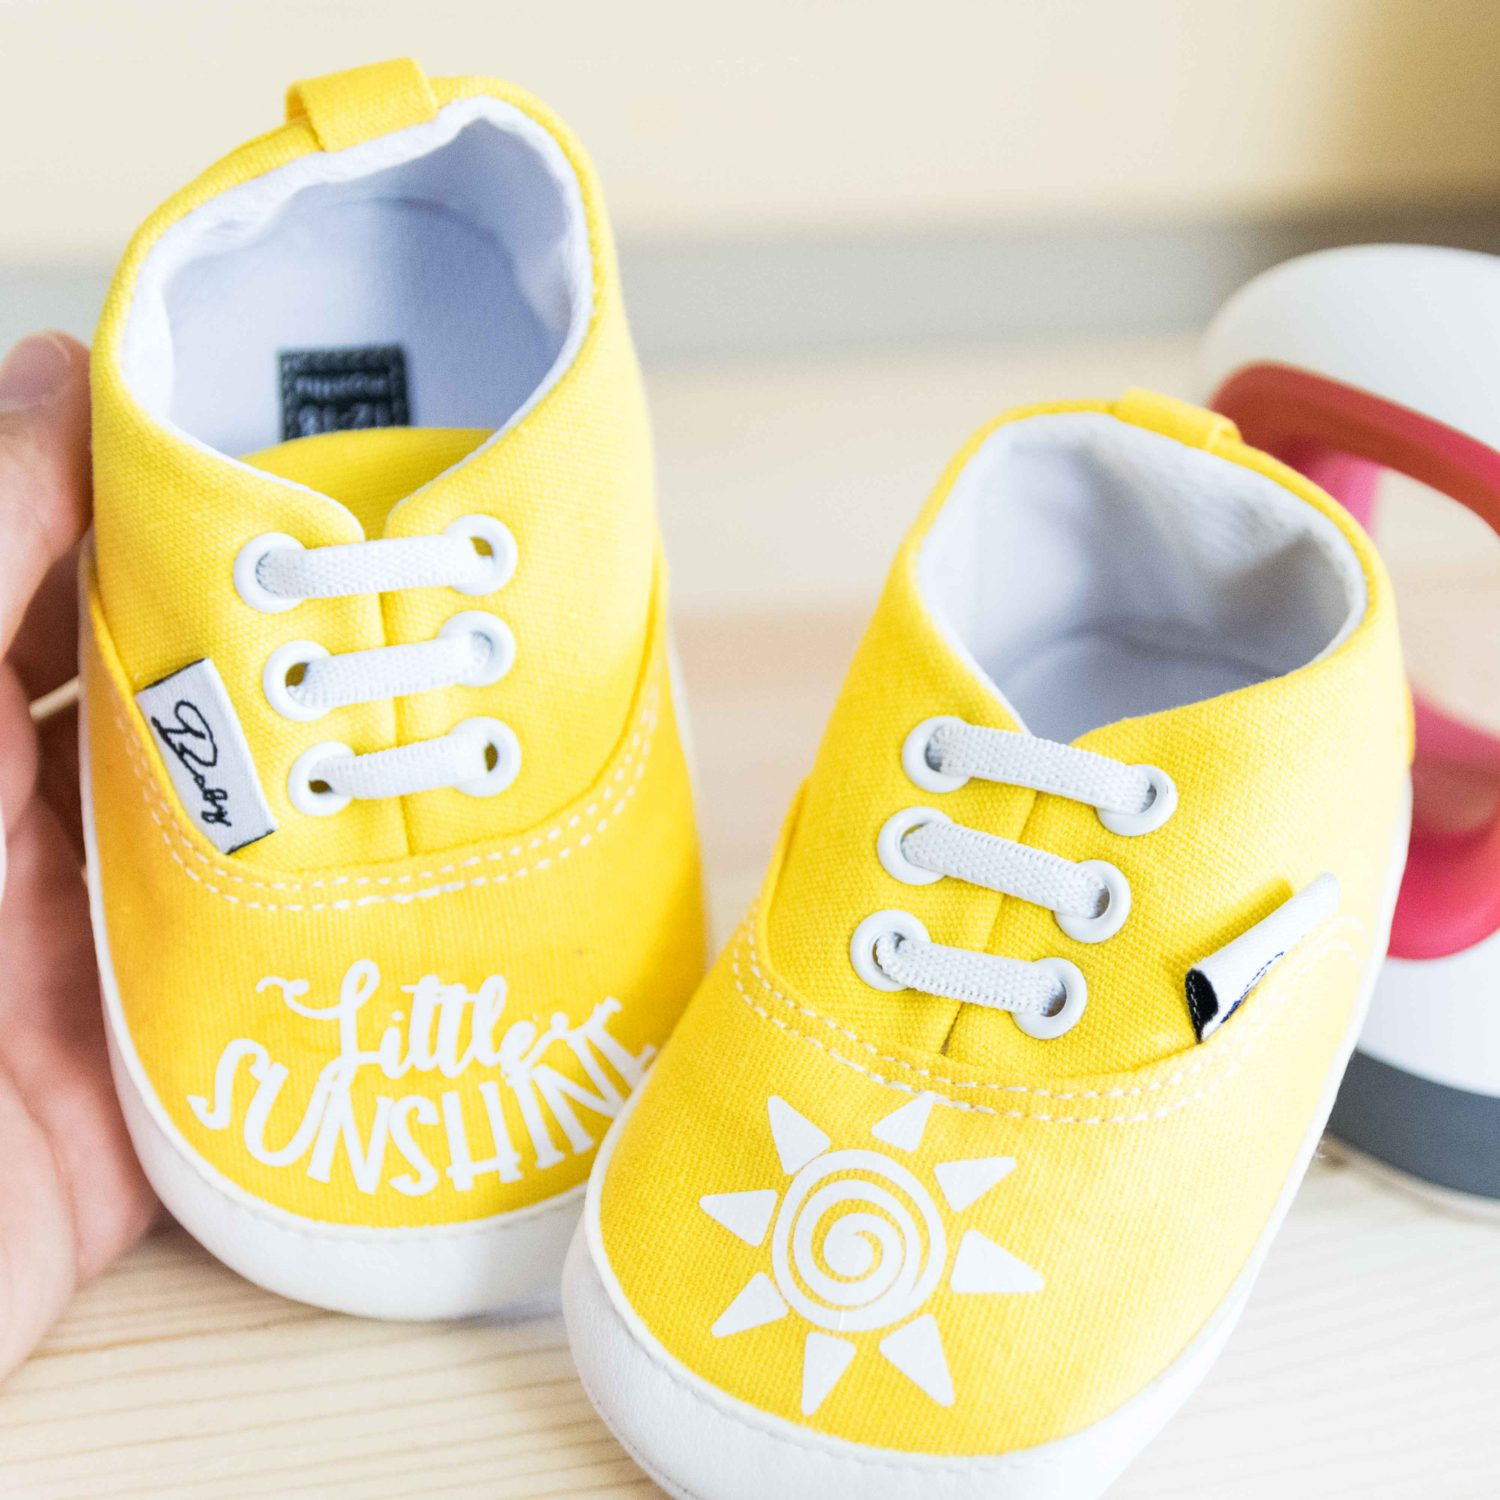 shoes made with the Cricut Easypress Mini